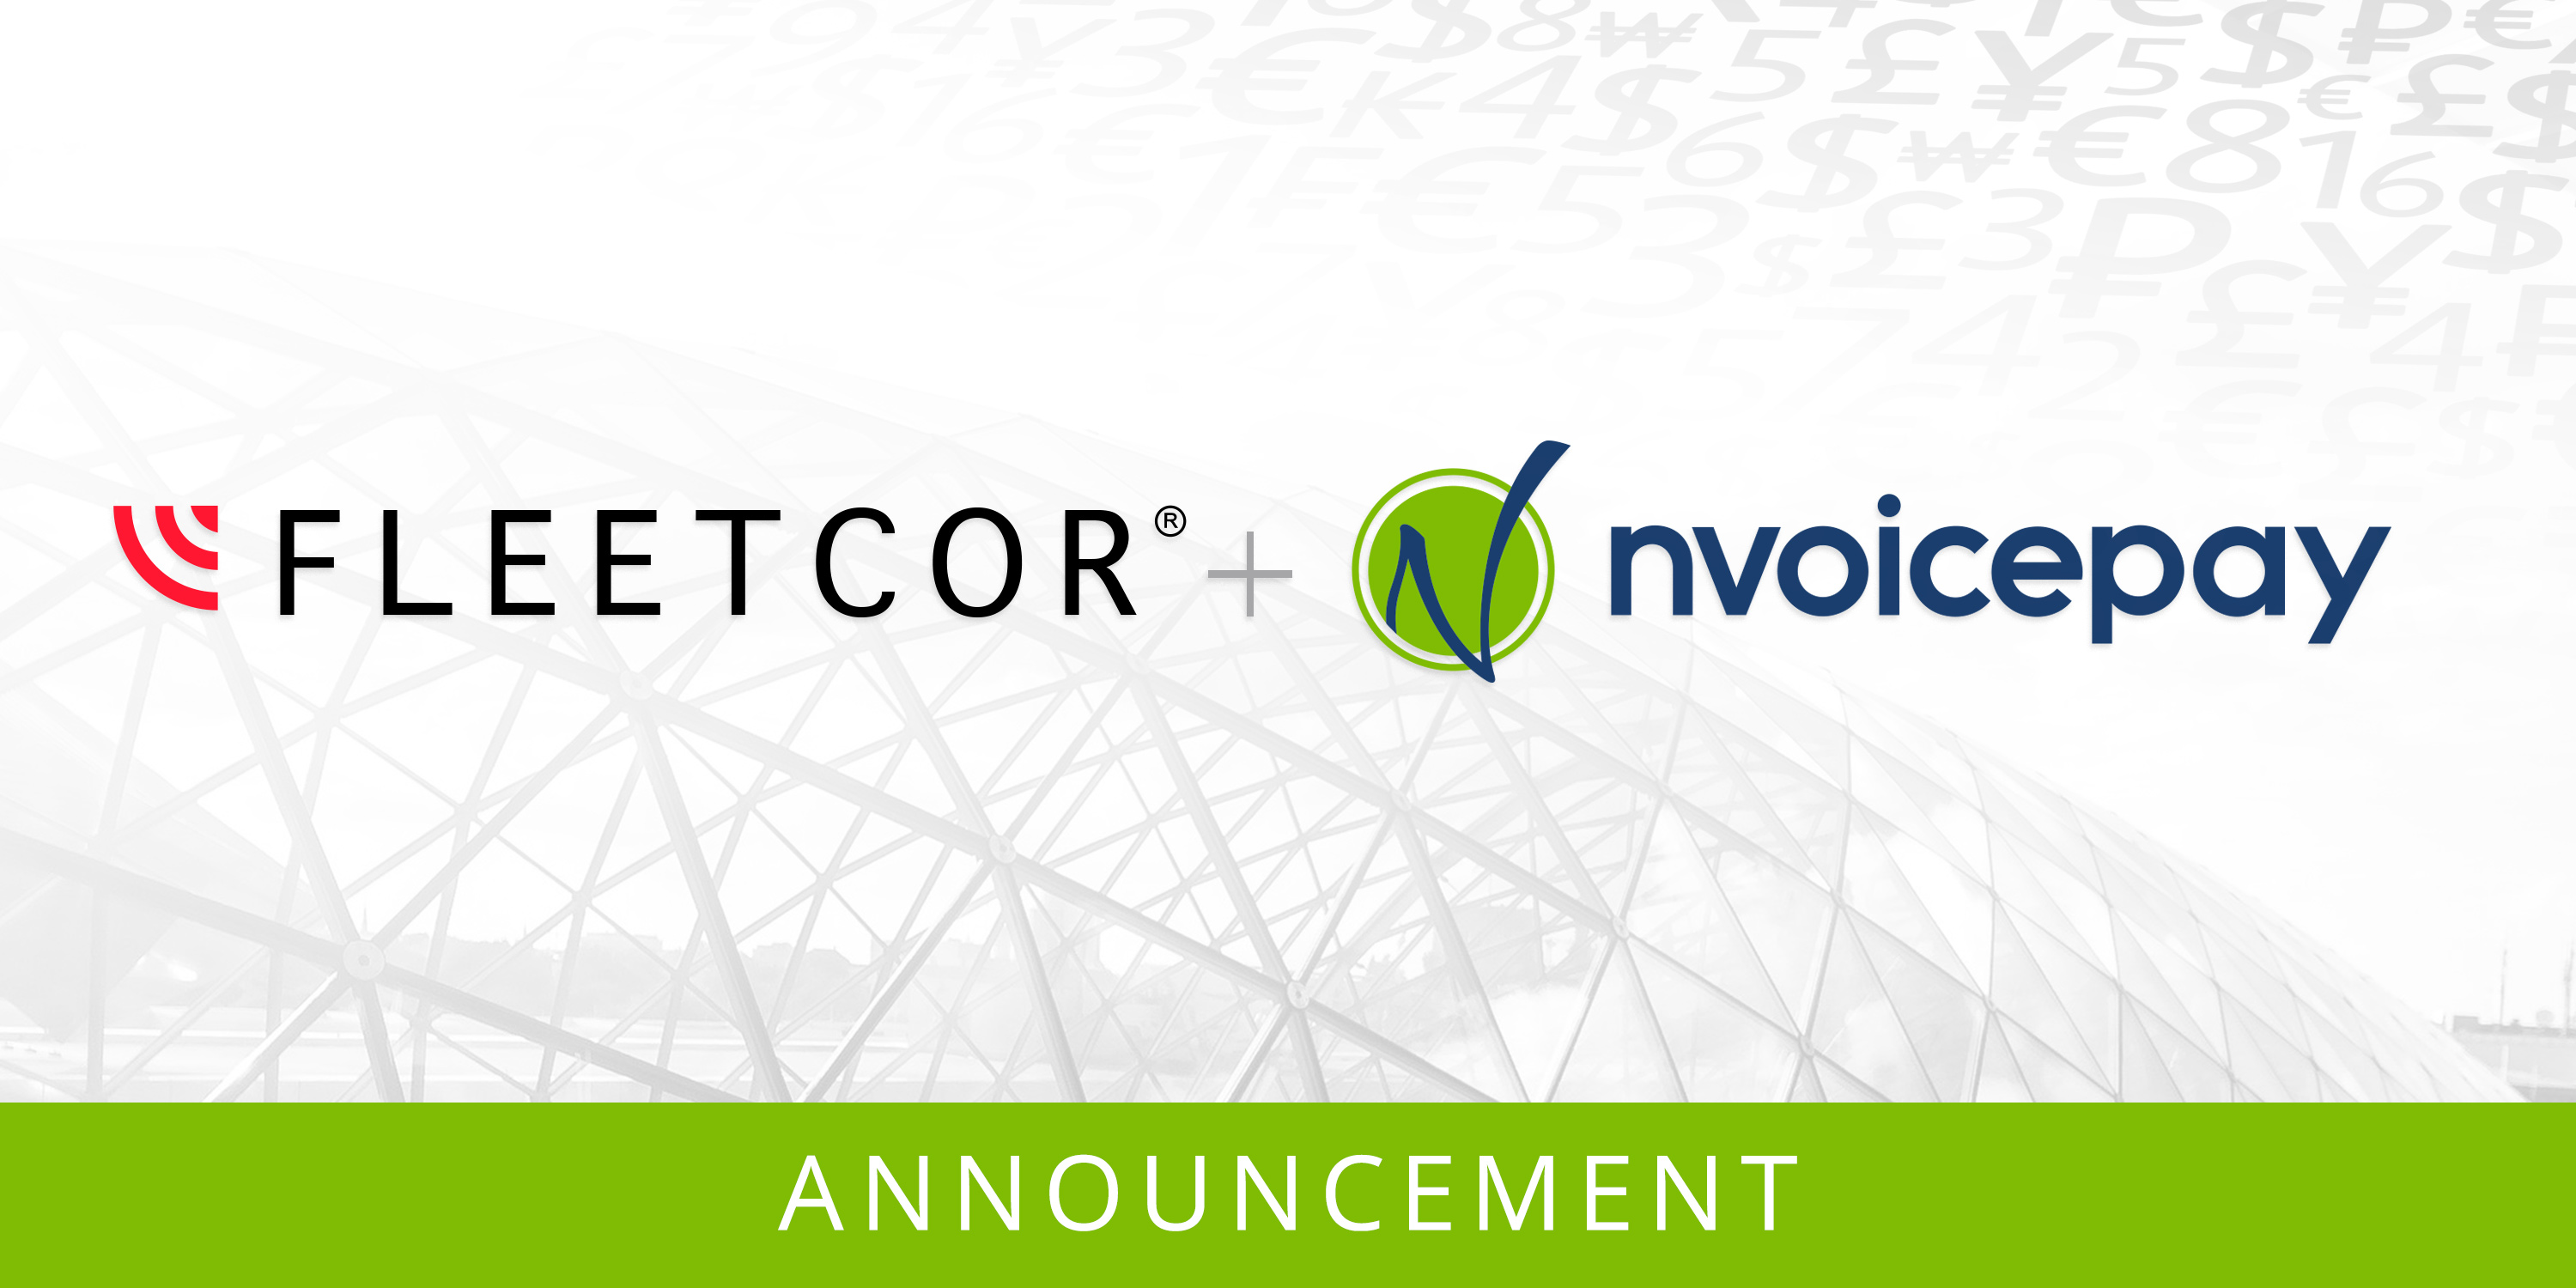 Announcement with Fleetcor and Nvoicepay